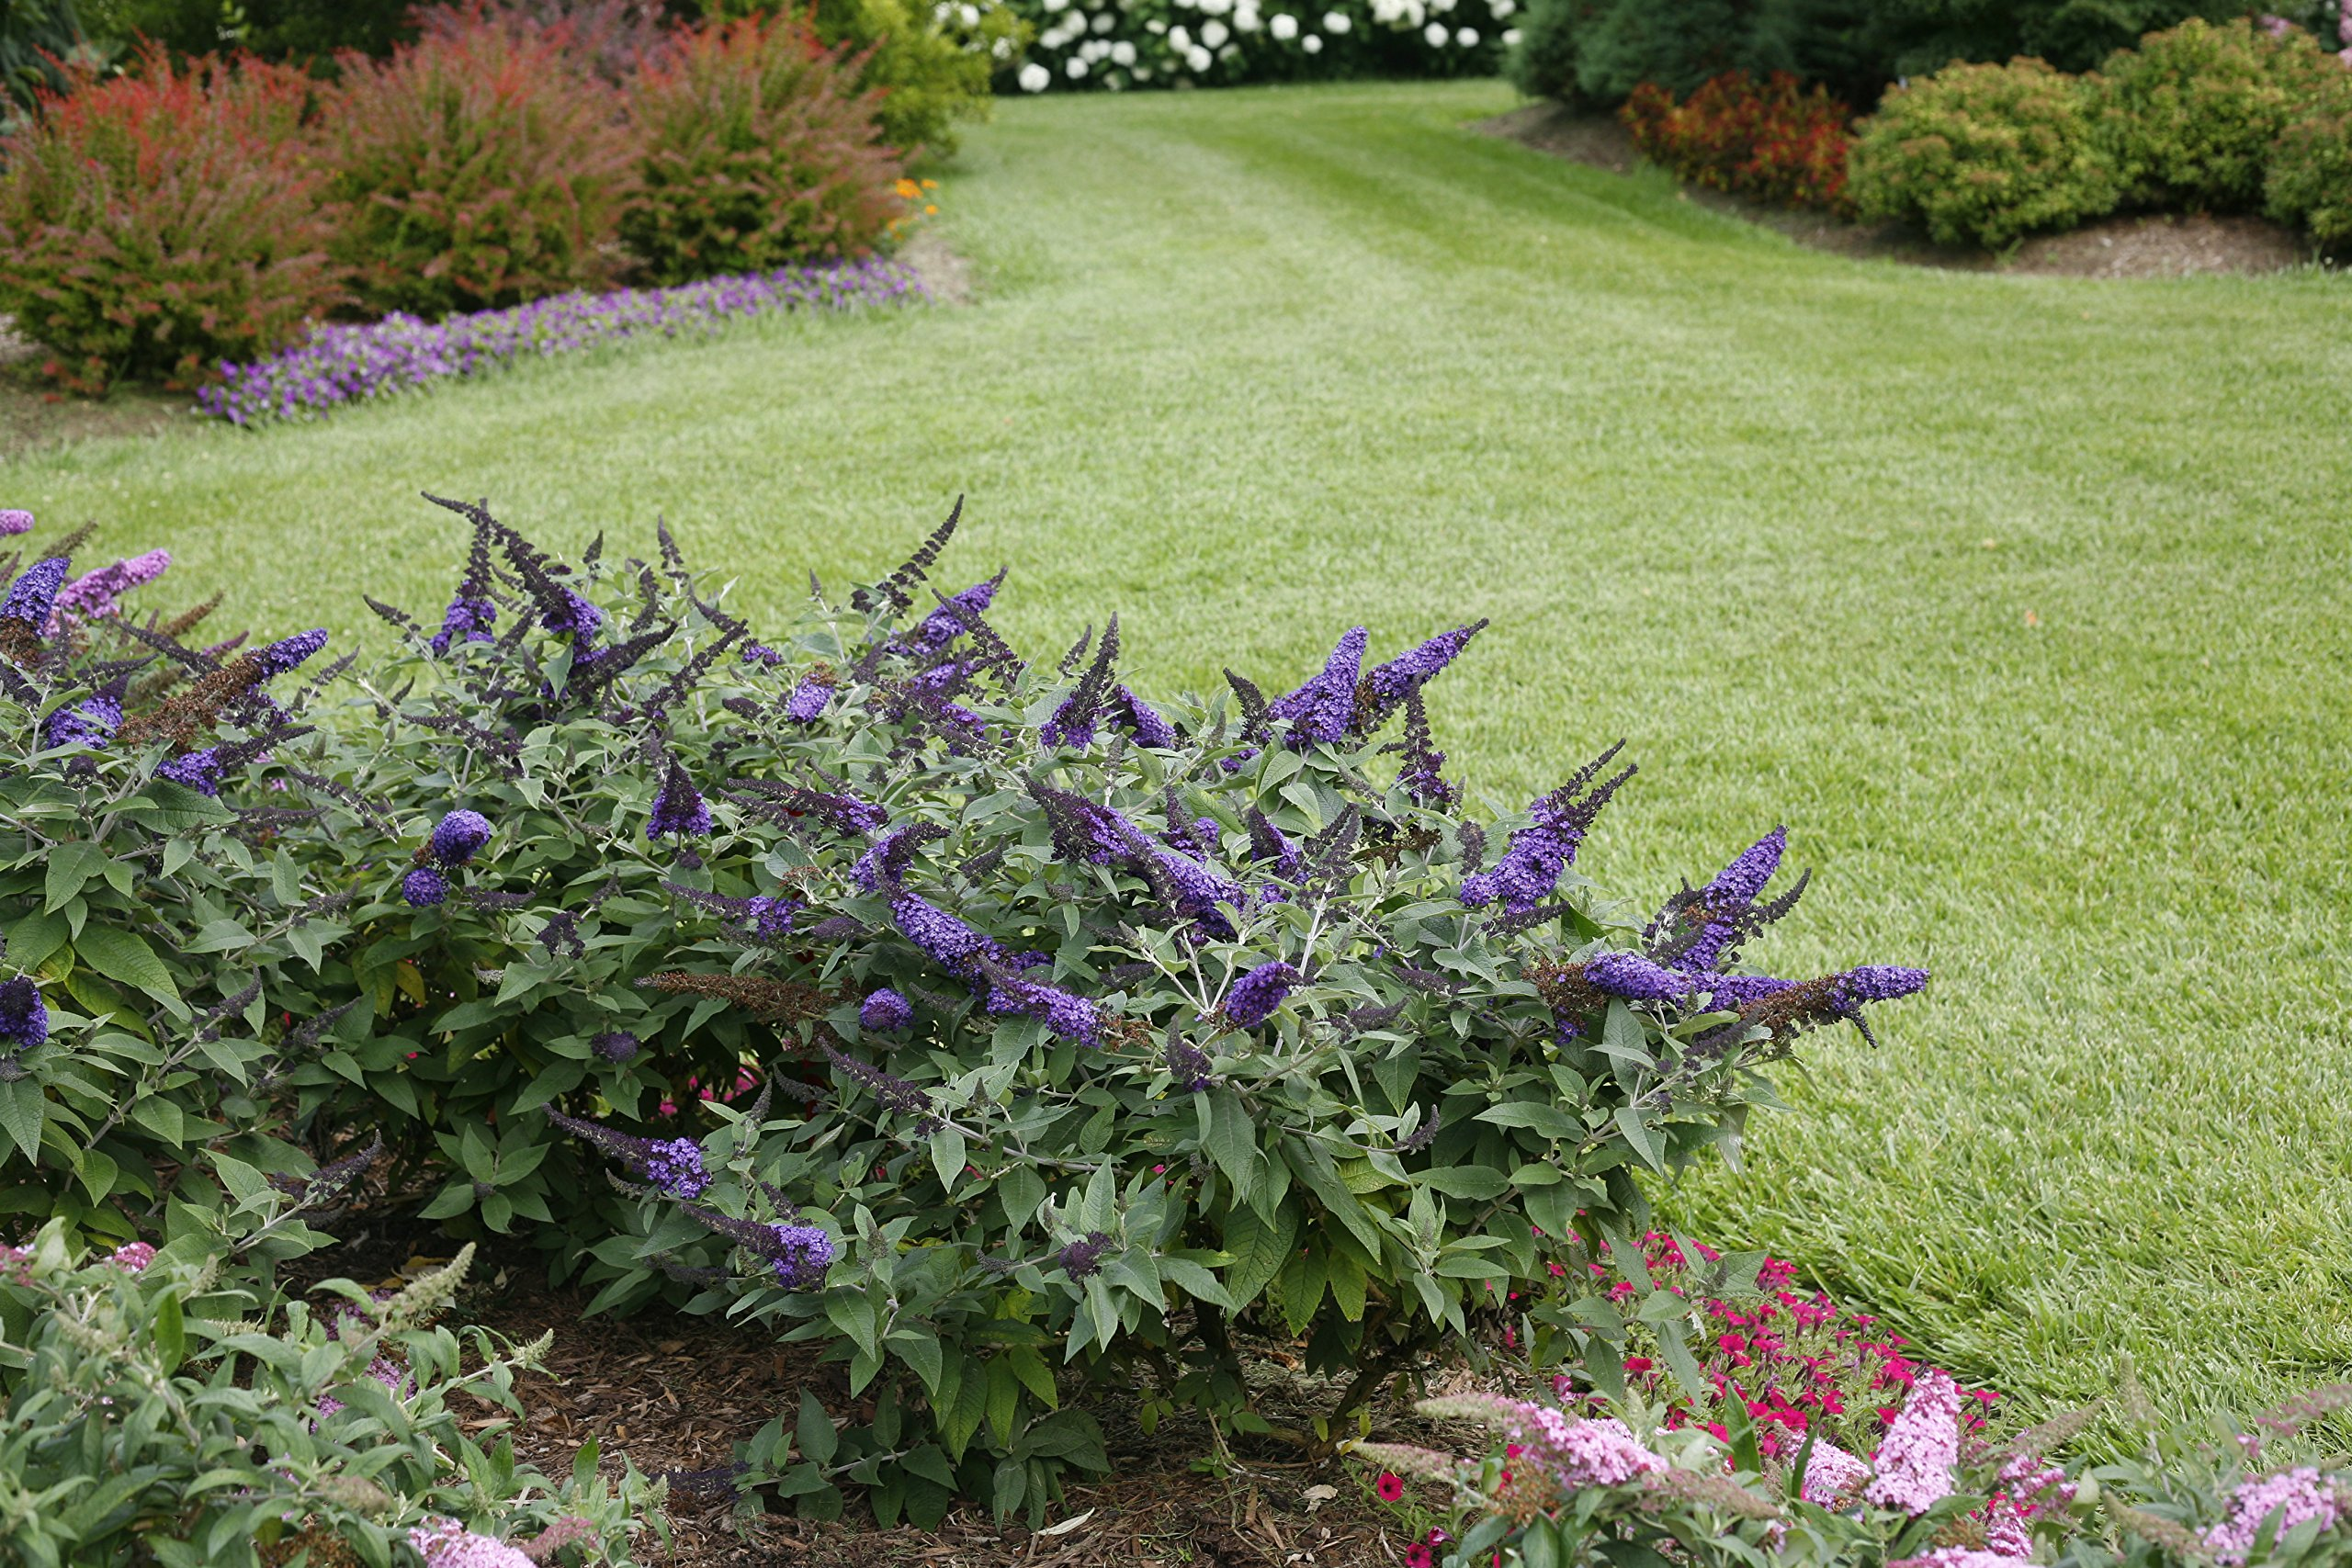 Pugster Blue Butterfly Bush (Buddleia) Live Shrub, Blue Flowers, 1 Gallon by Proven Winners (Image #7)